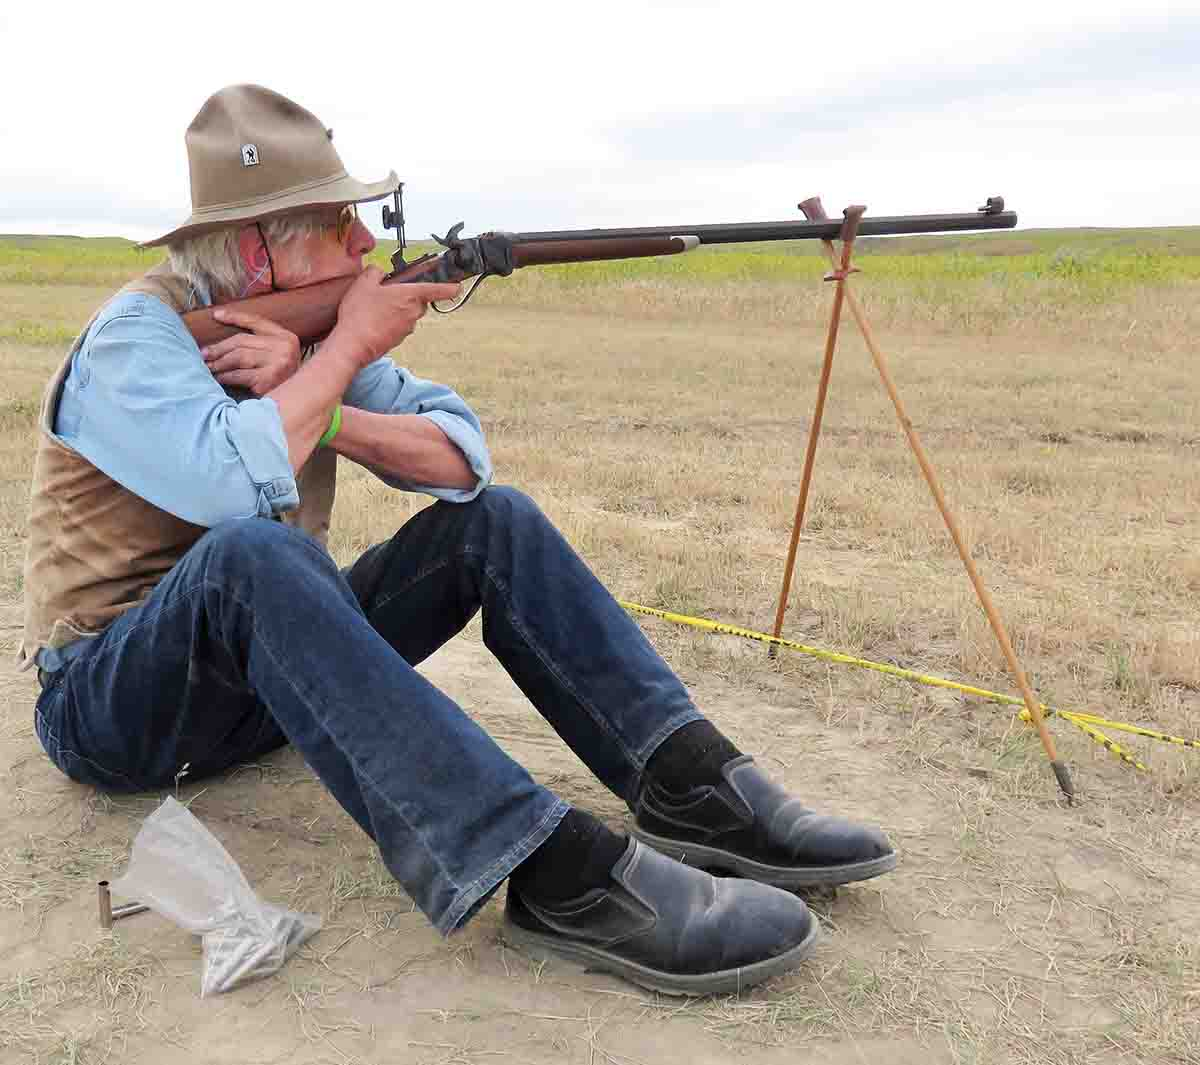 The author's cross-stick technique at the Quigley match, breaking in the new C. Sharps Arms .44-70 Model 1874.